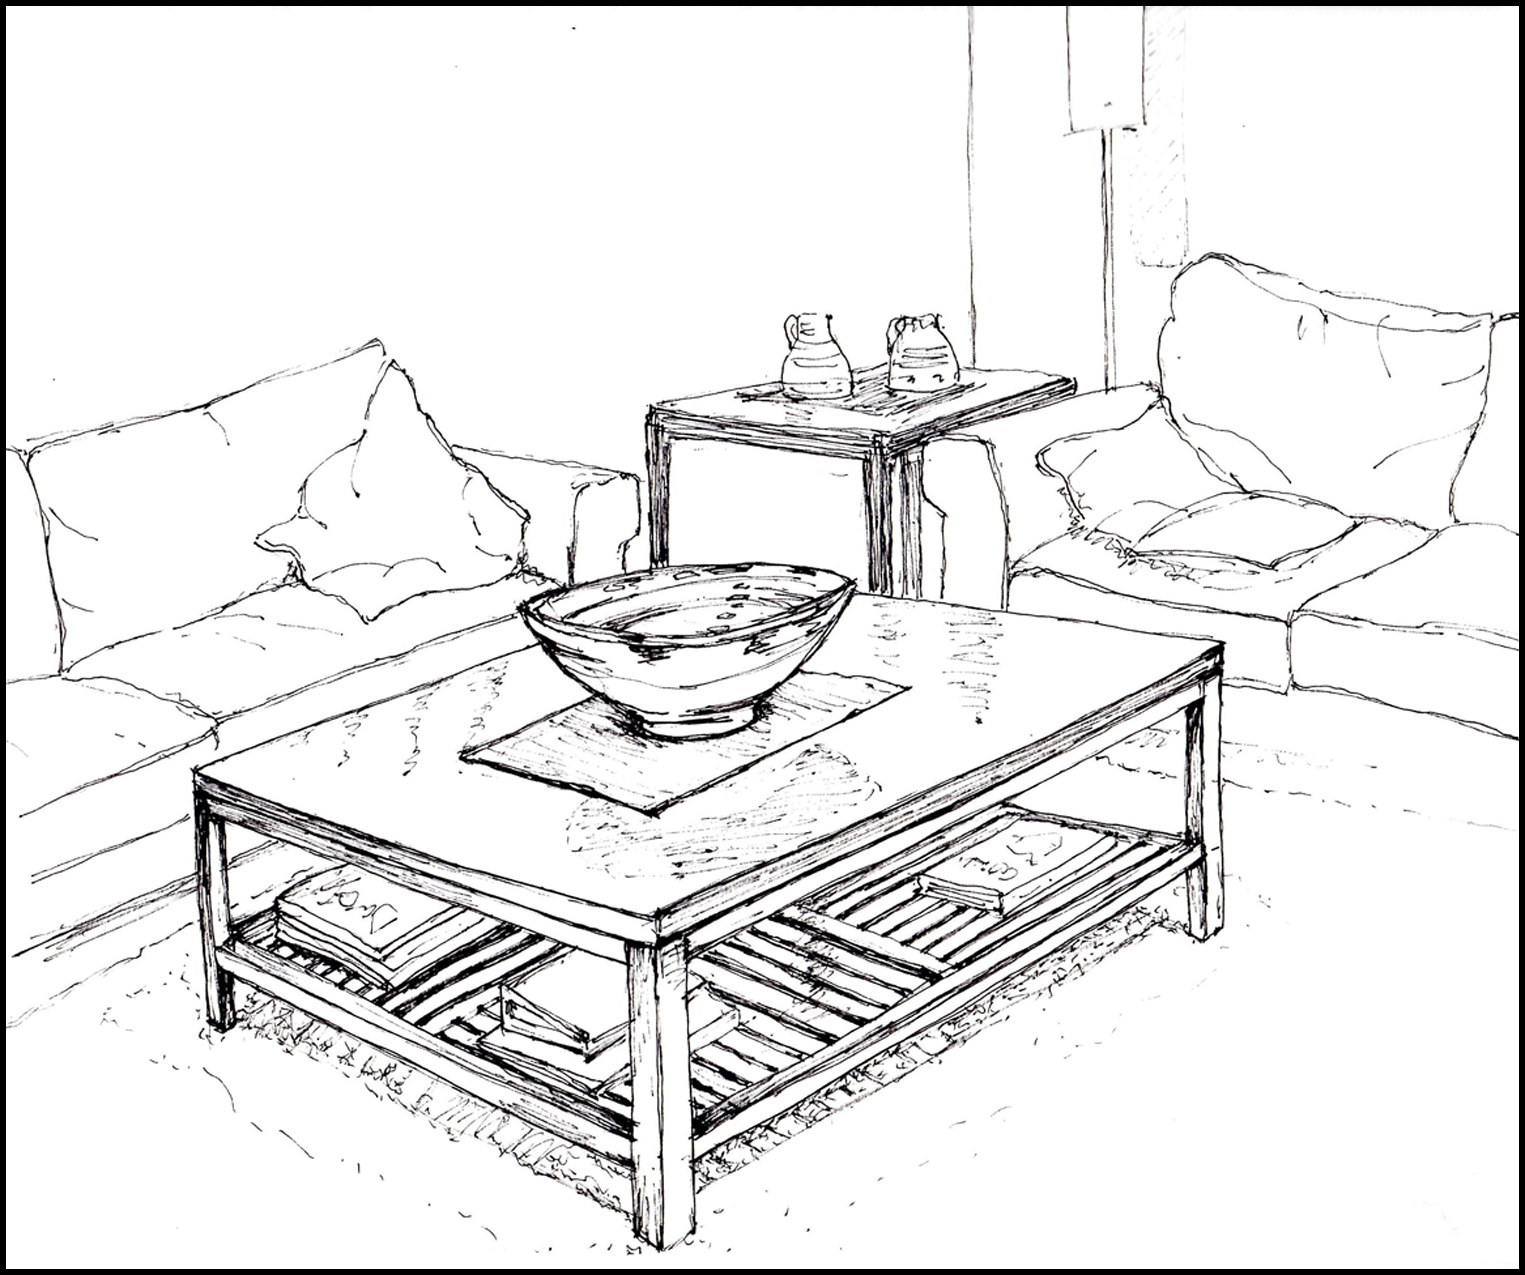 Bedroom Perspective Drawing at GetDrawings.com | Free for personal ...